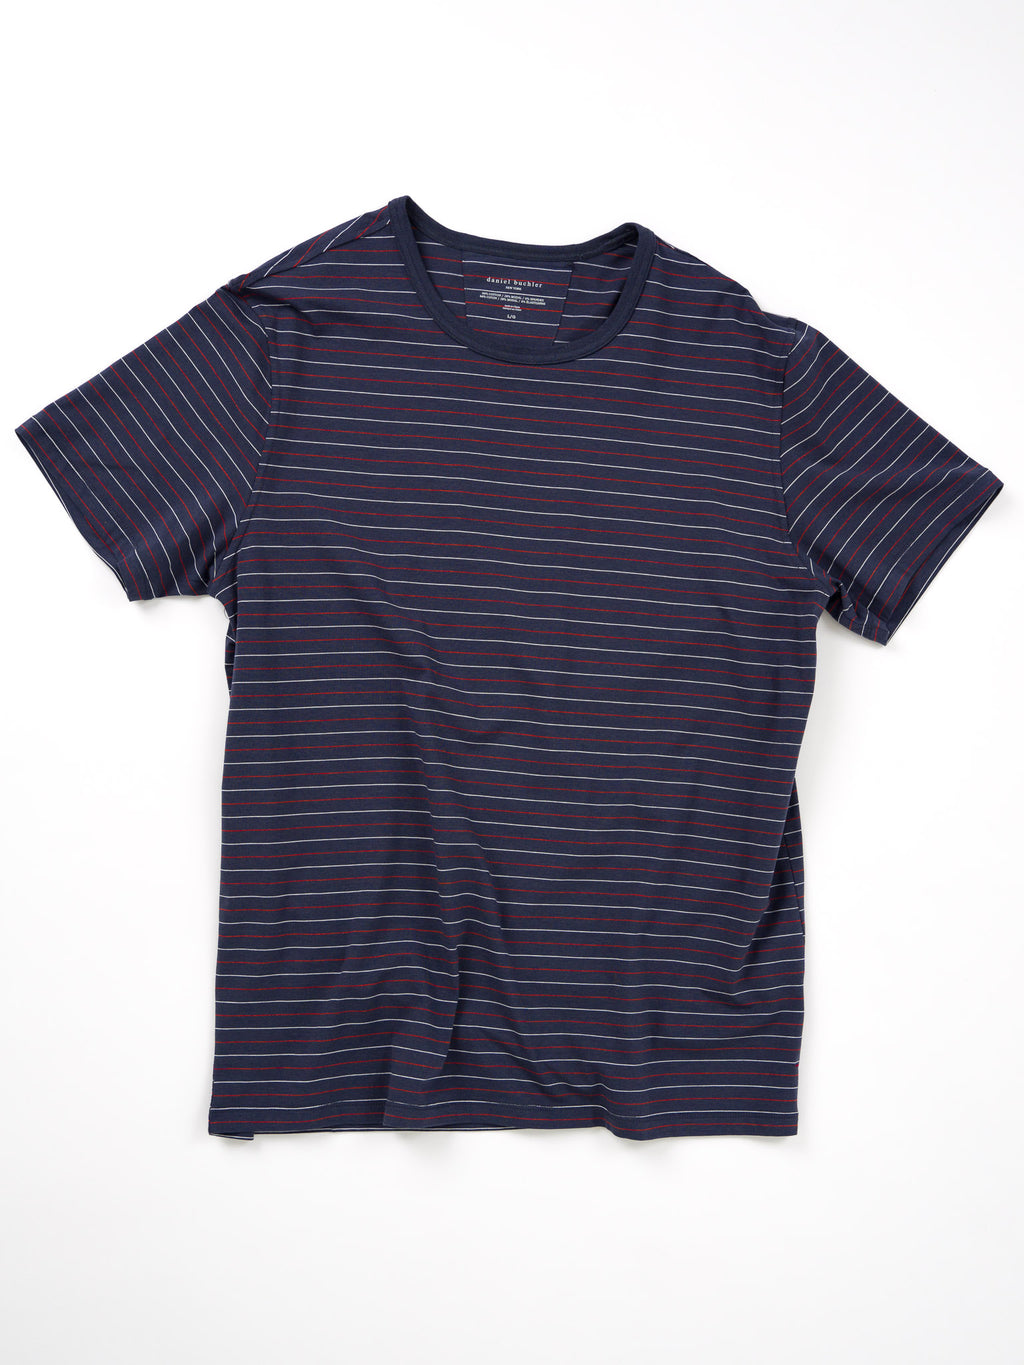 Cotton/Modal Striped Crewneck